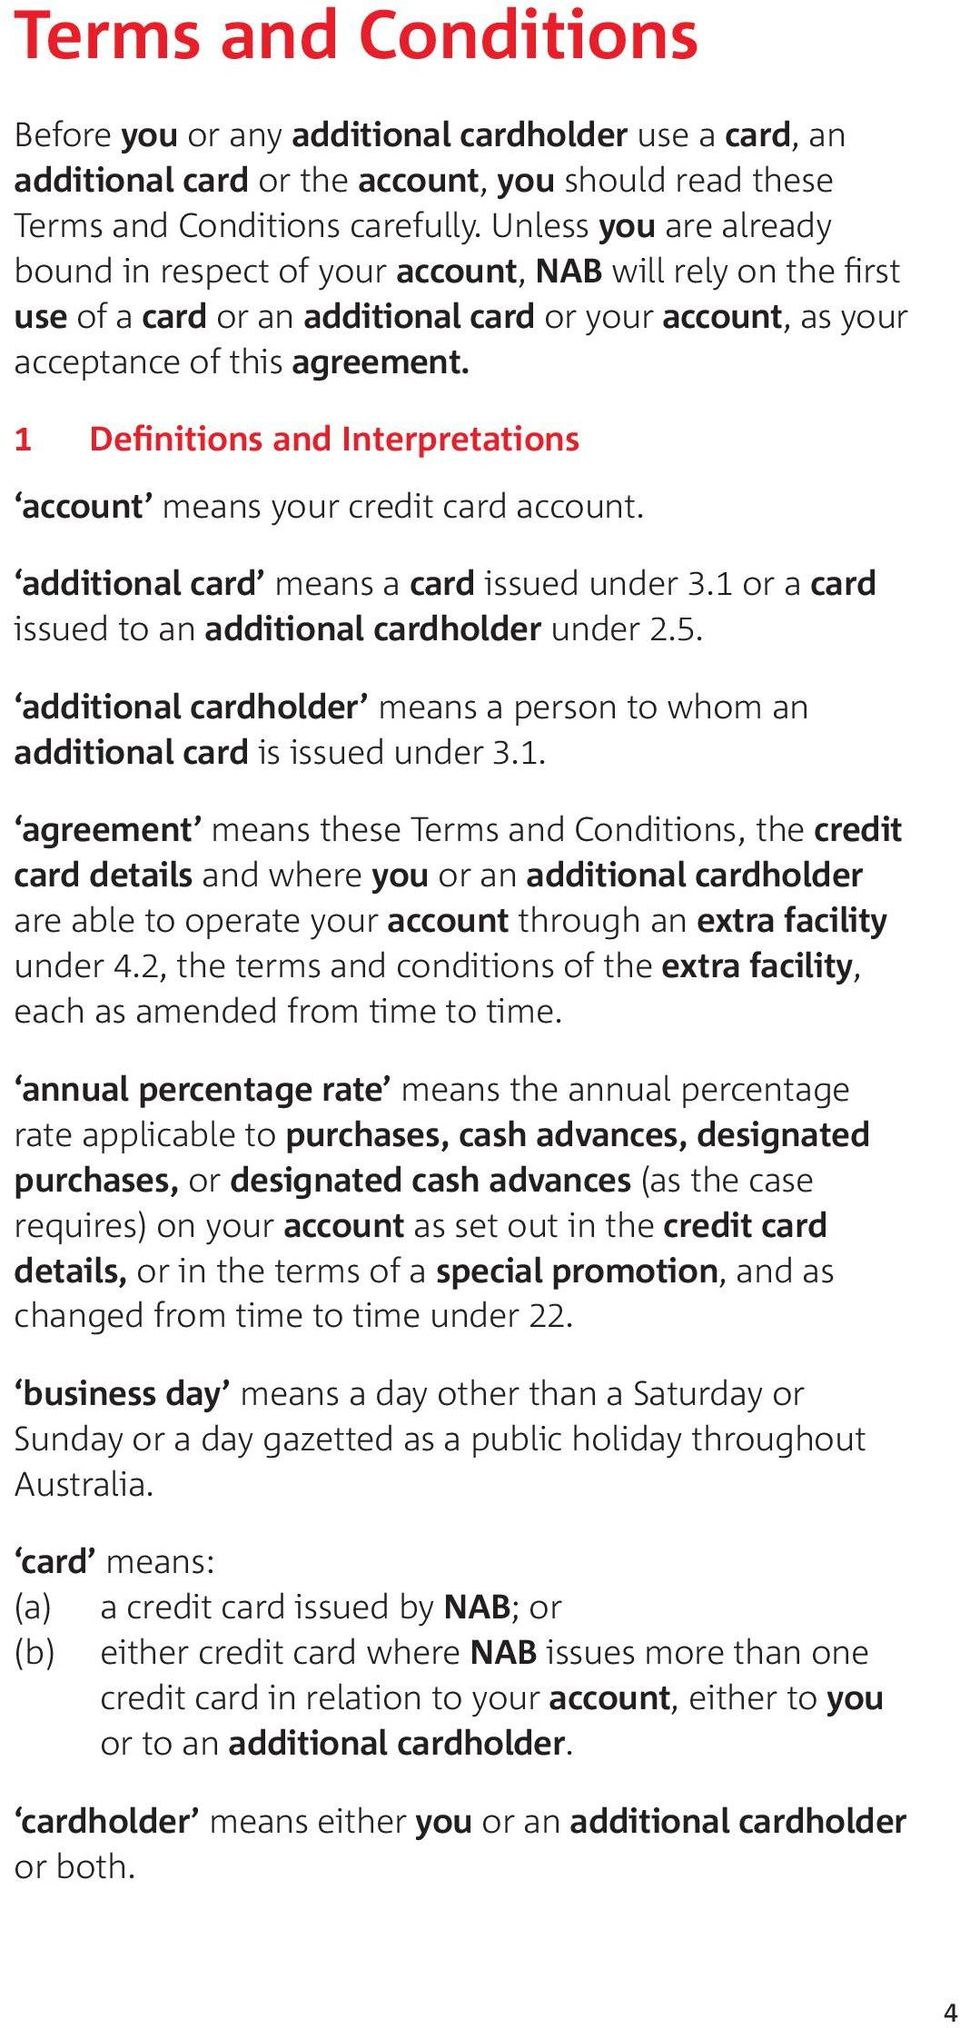 1 Definitions and Interpretations account means your credit card account. additional card means a card issued under 3.1 or a card issued to an additional cardholder under 2.5.